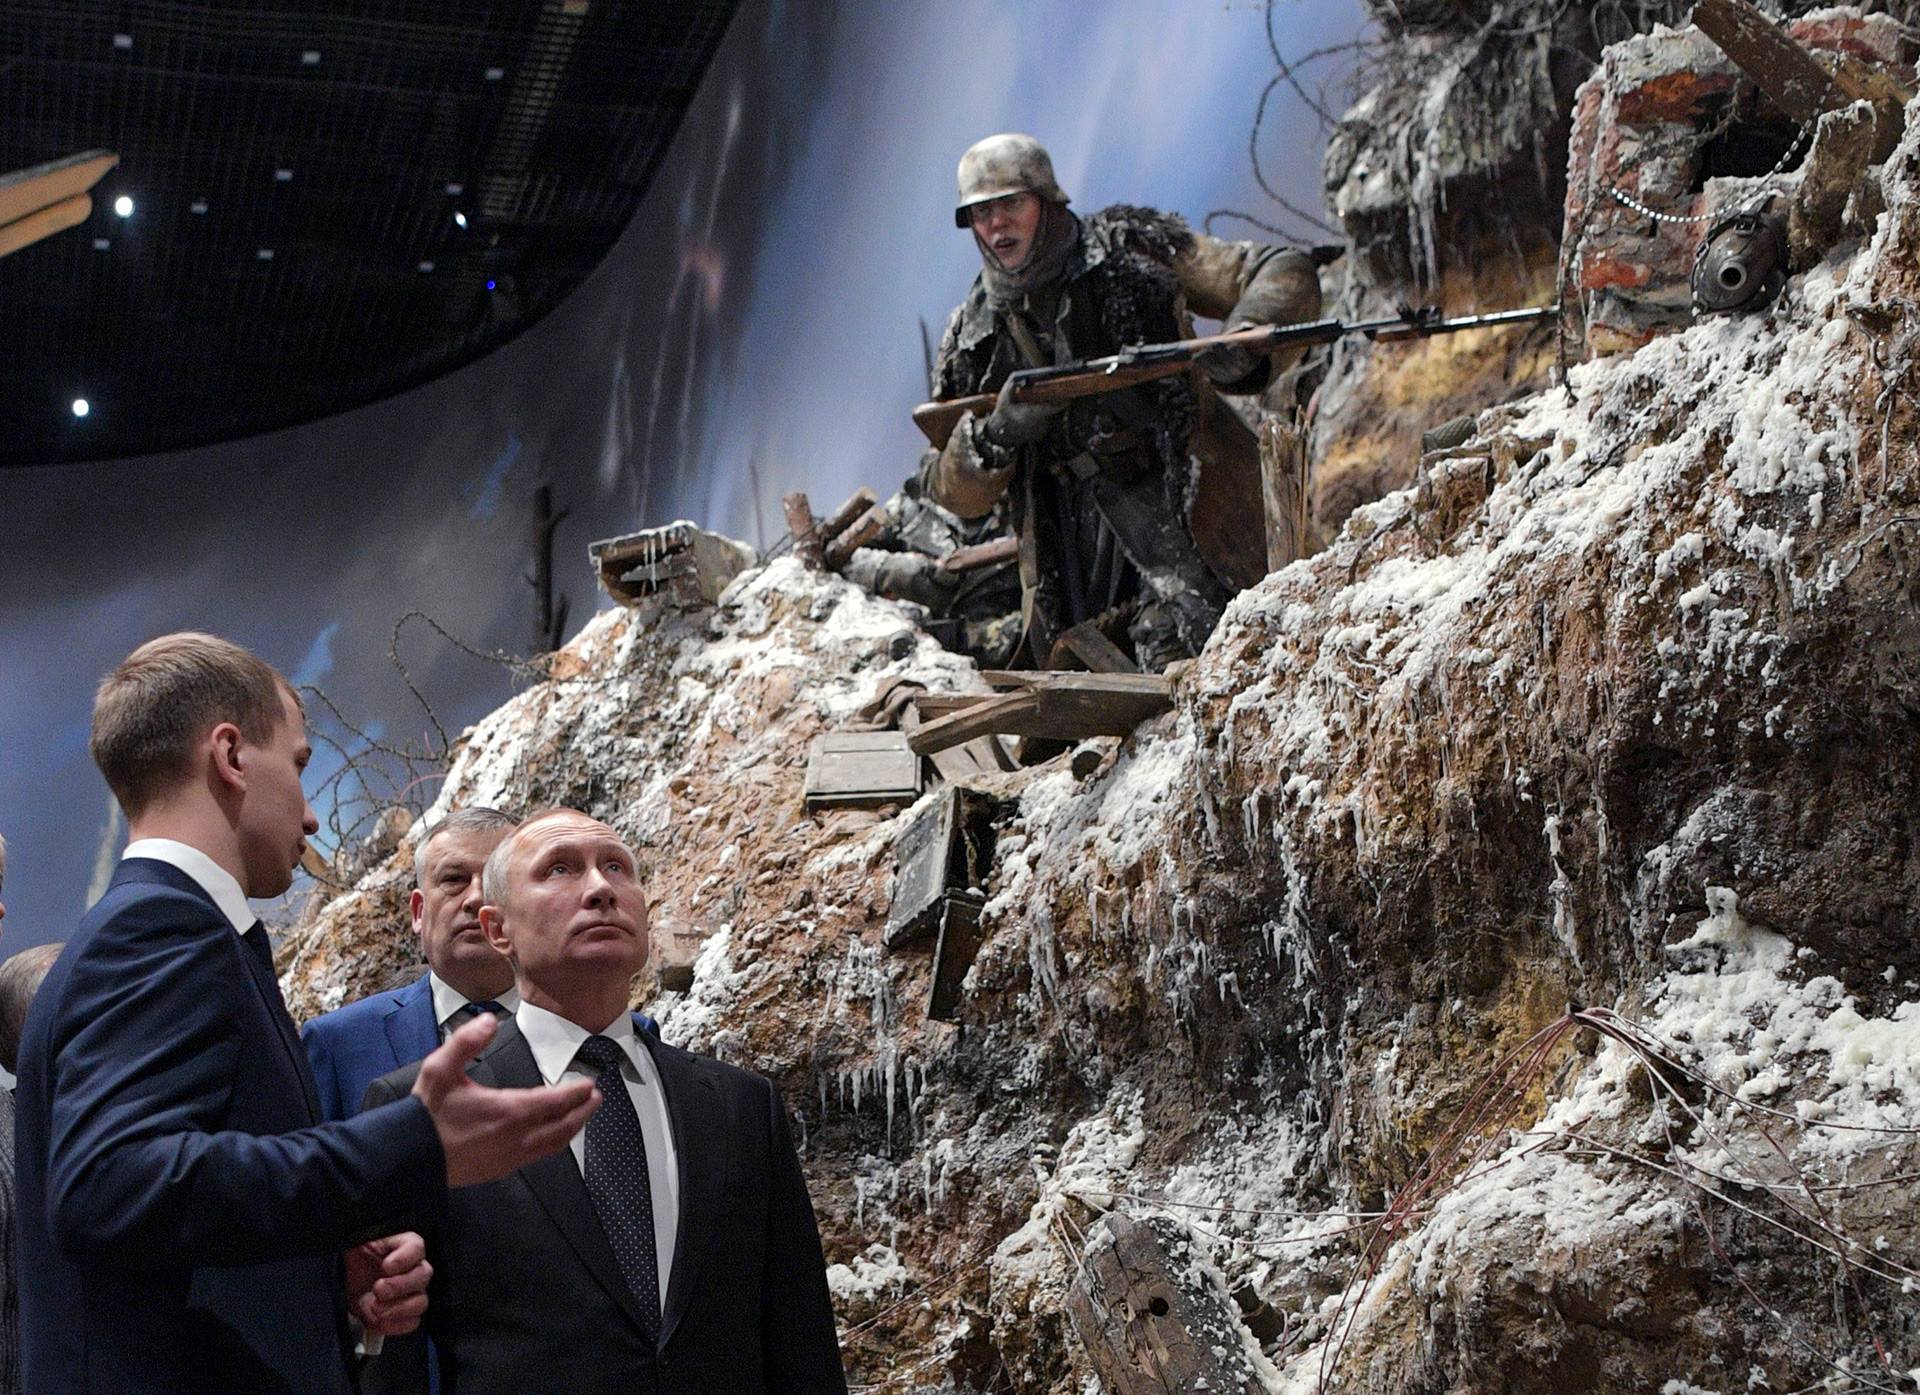 It was Vladimir Putin who suggested creating a permanent 3D panorama instead of temporary installations devoted to the conflict